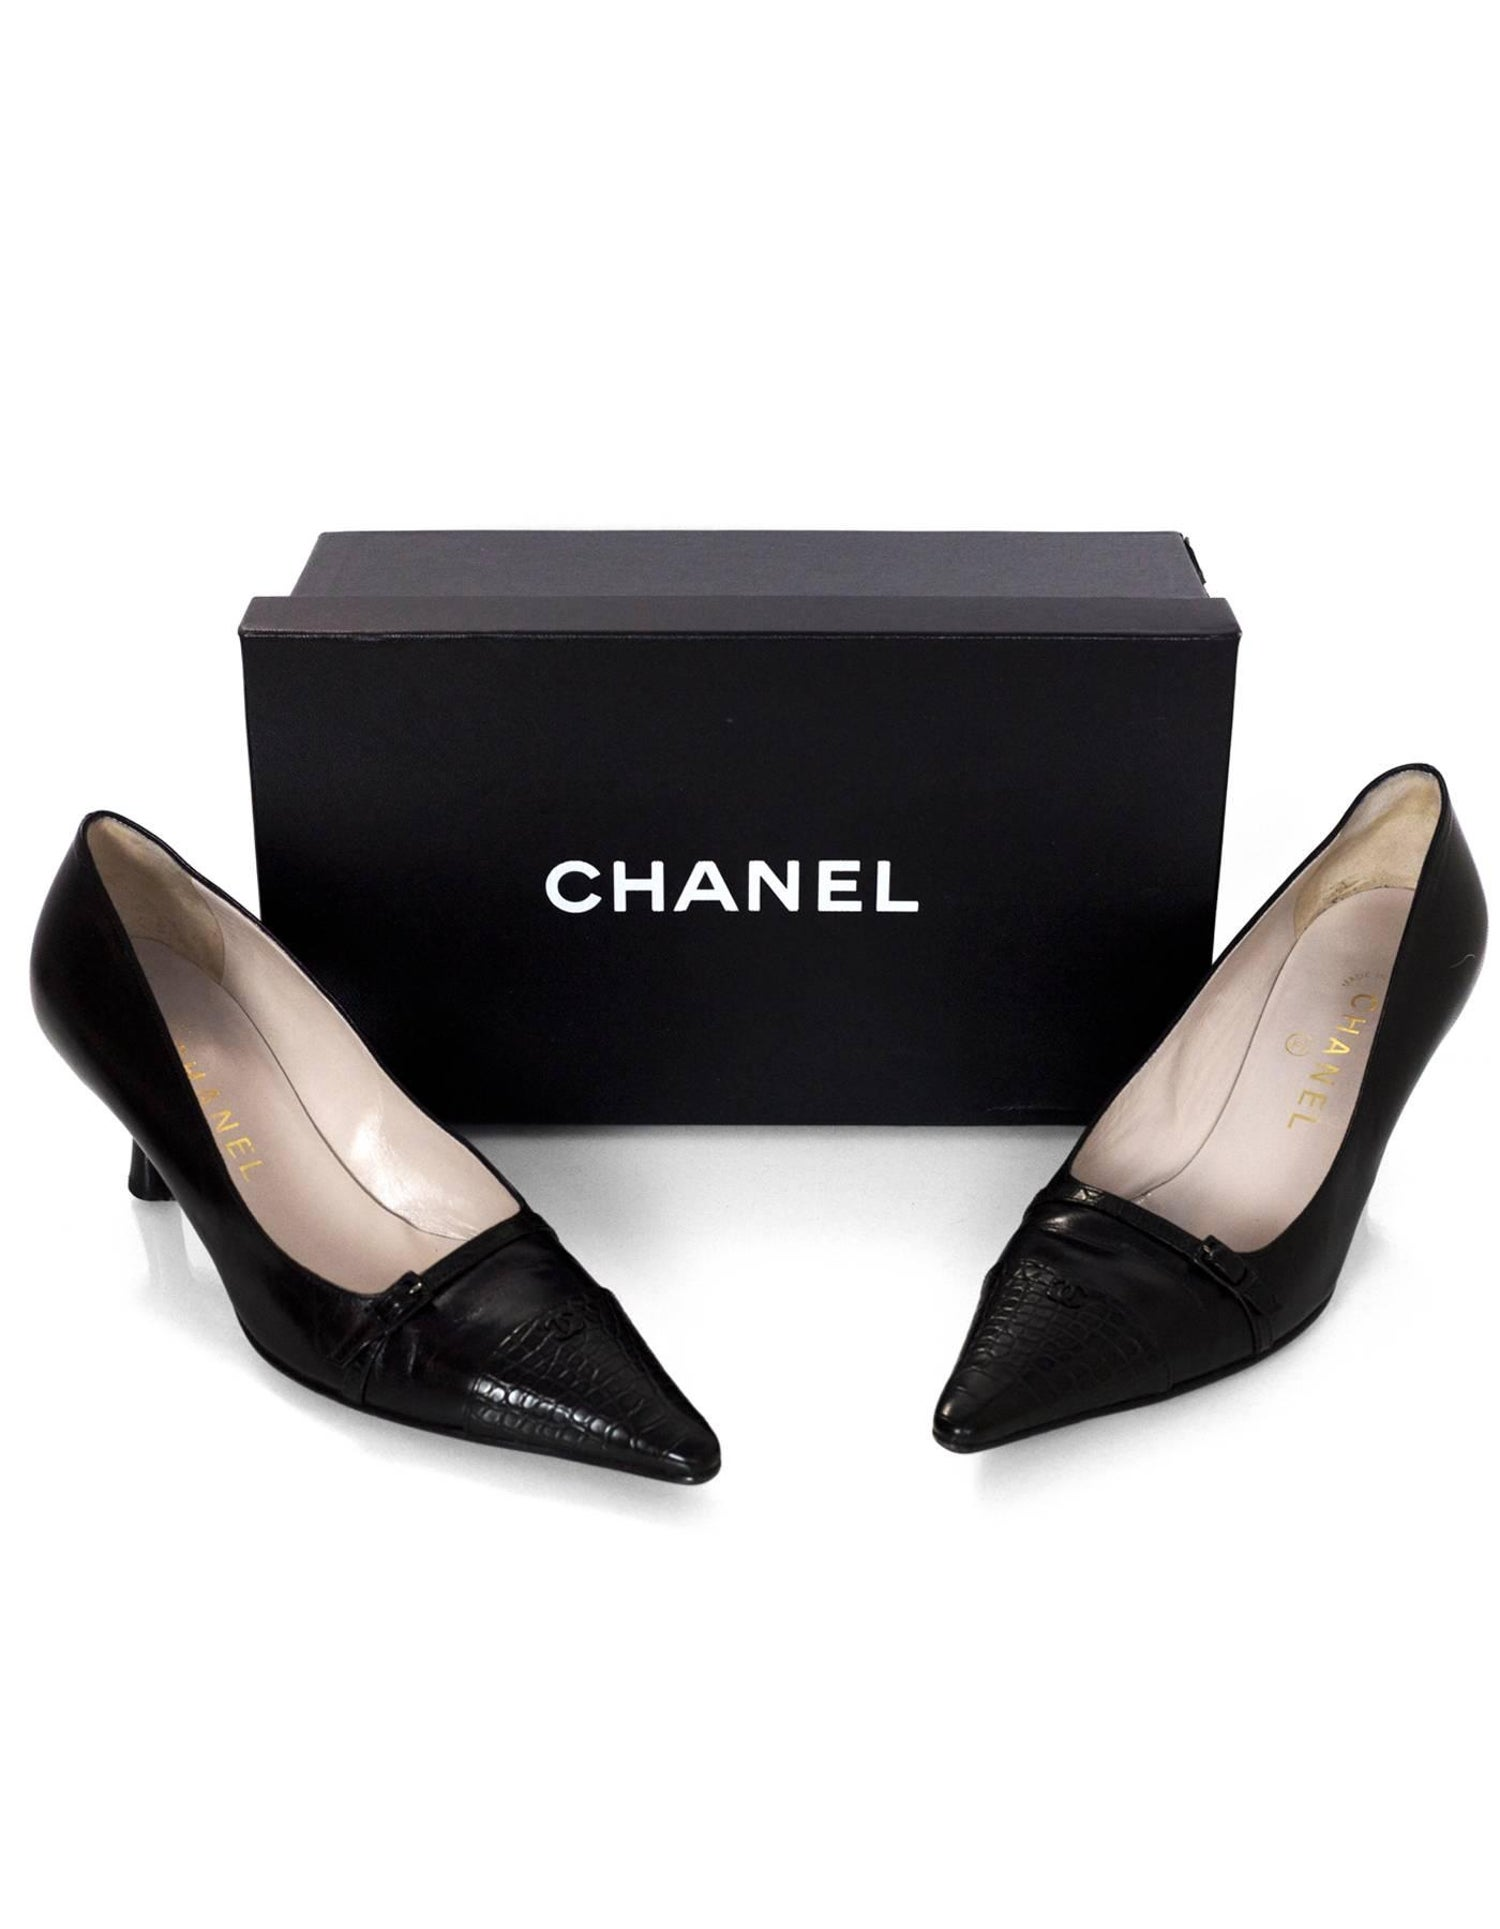 a0c4e68364e Chanel Black Leather Kitten Heels Sz 37 with Box For Sale at 1stdibs